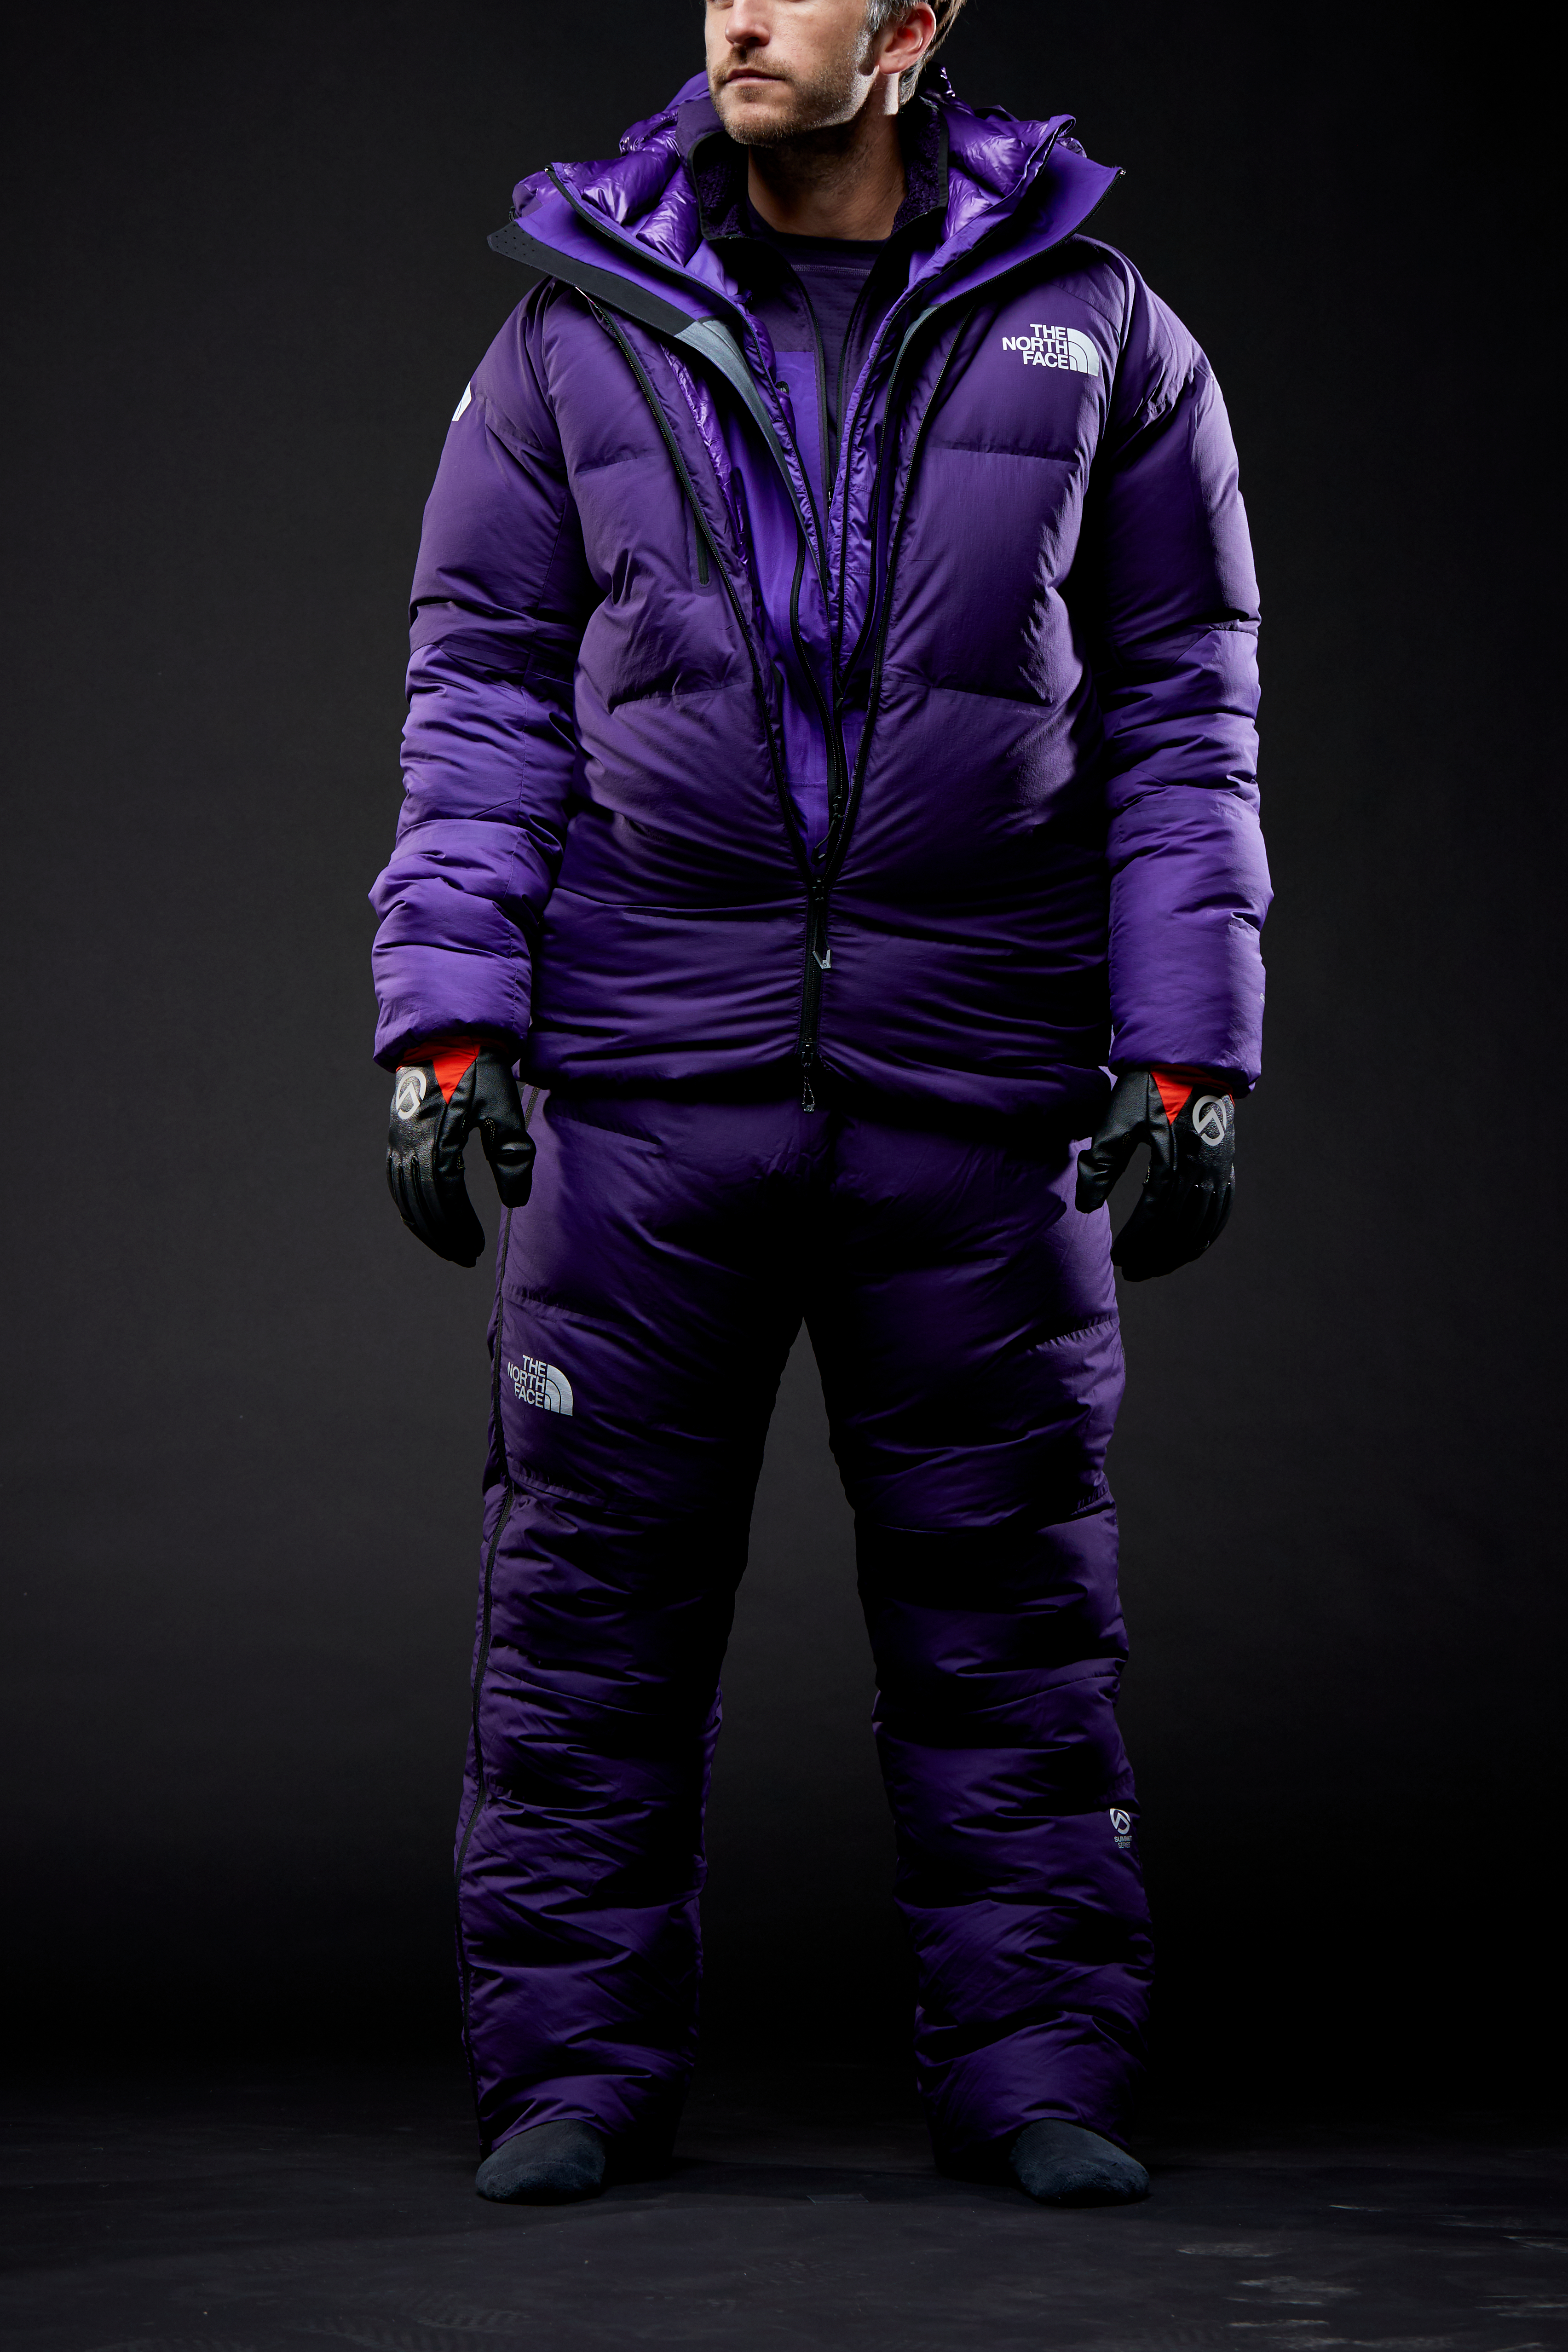 Summit AMK L6 Parka and Pant